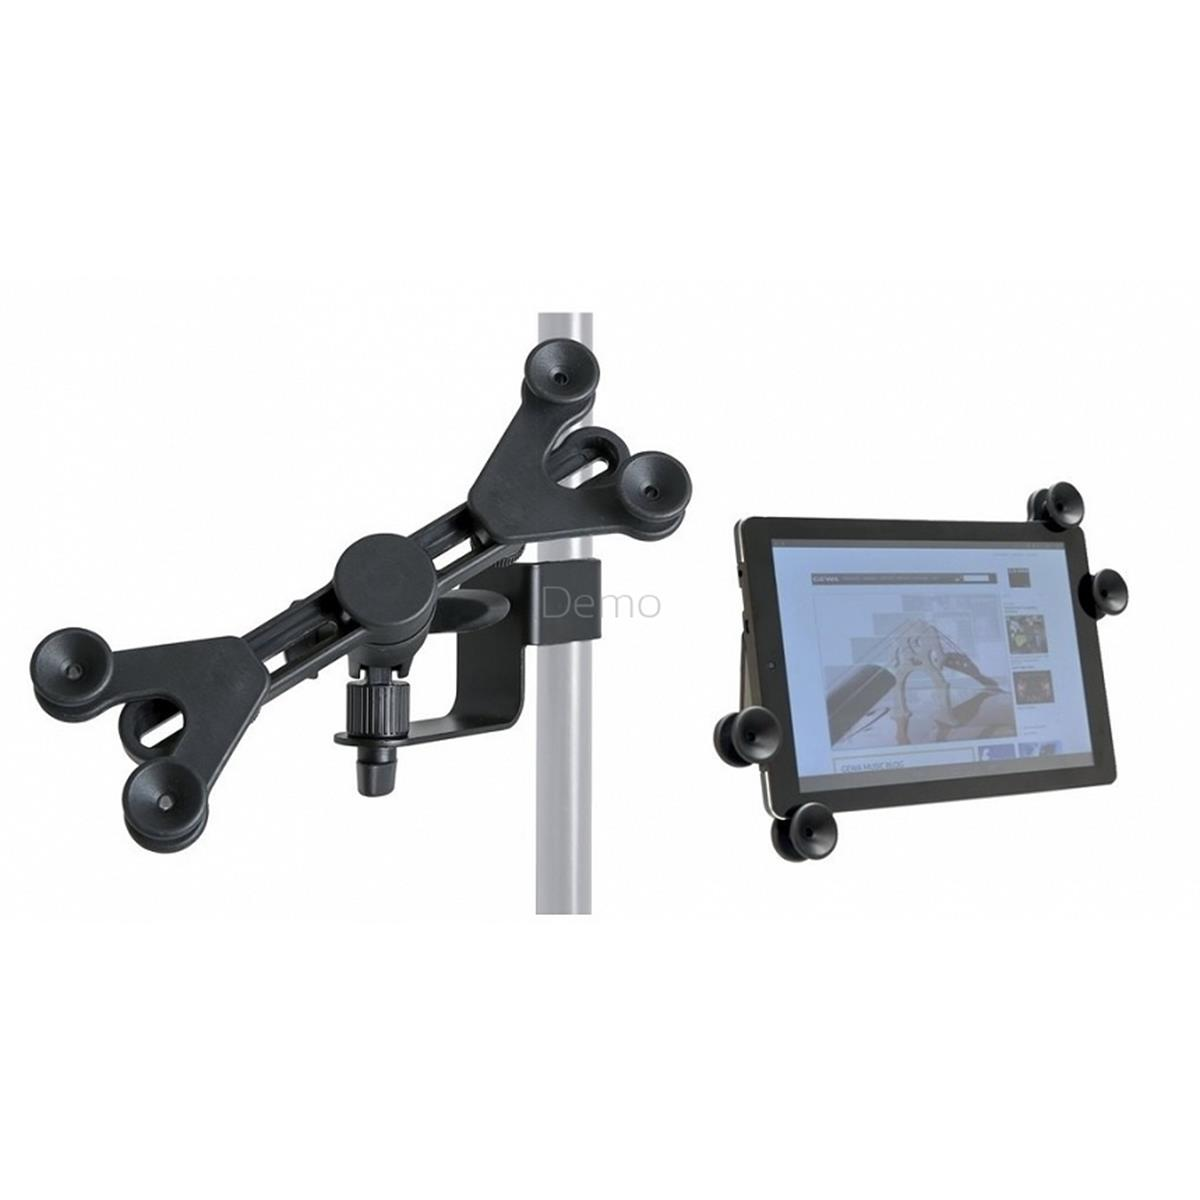 GEWA-STAND-SUPPORTO-PAD-UNIVERSAL-TABLET-HOLDER-901568-sku-16109